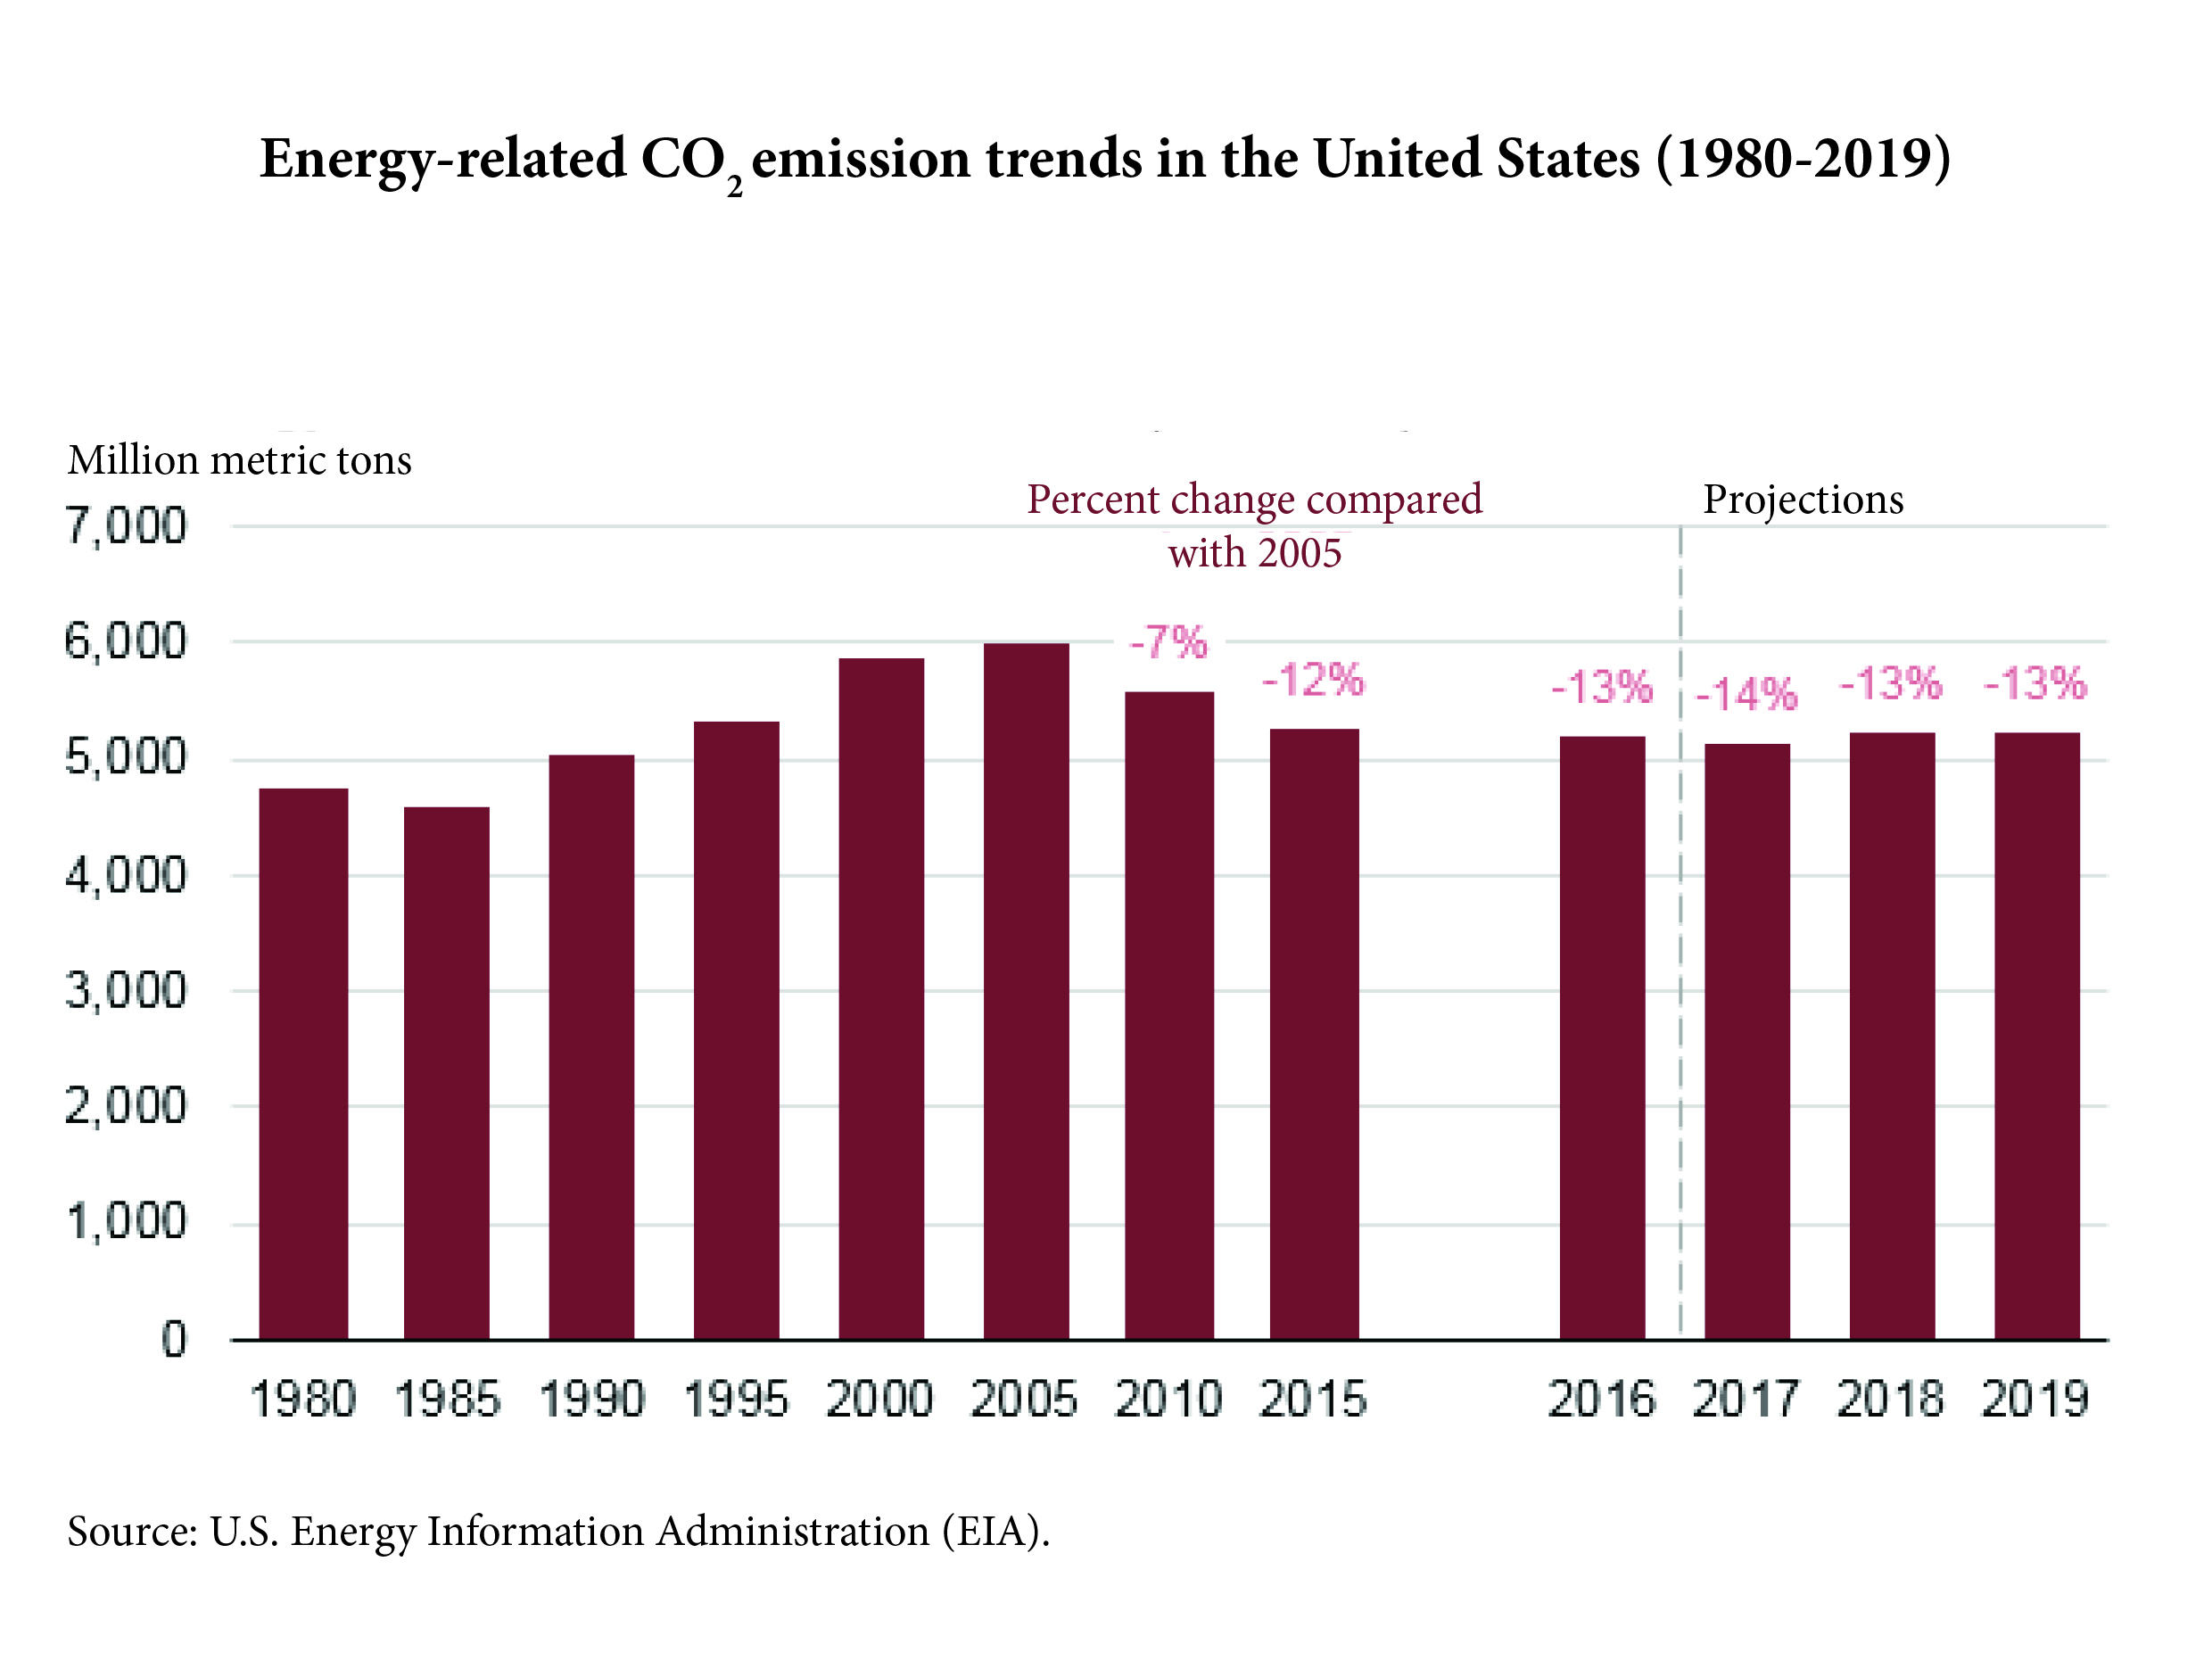 Energy-related CO2 emission trends in the United States (1980-2019)